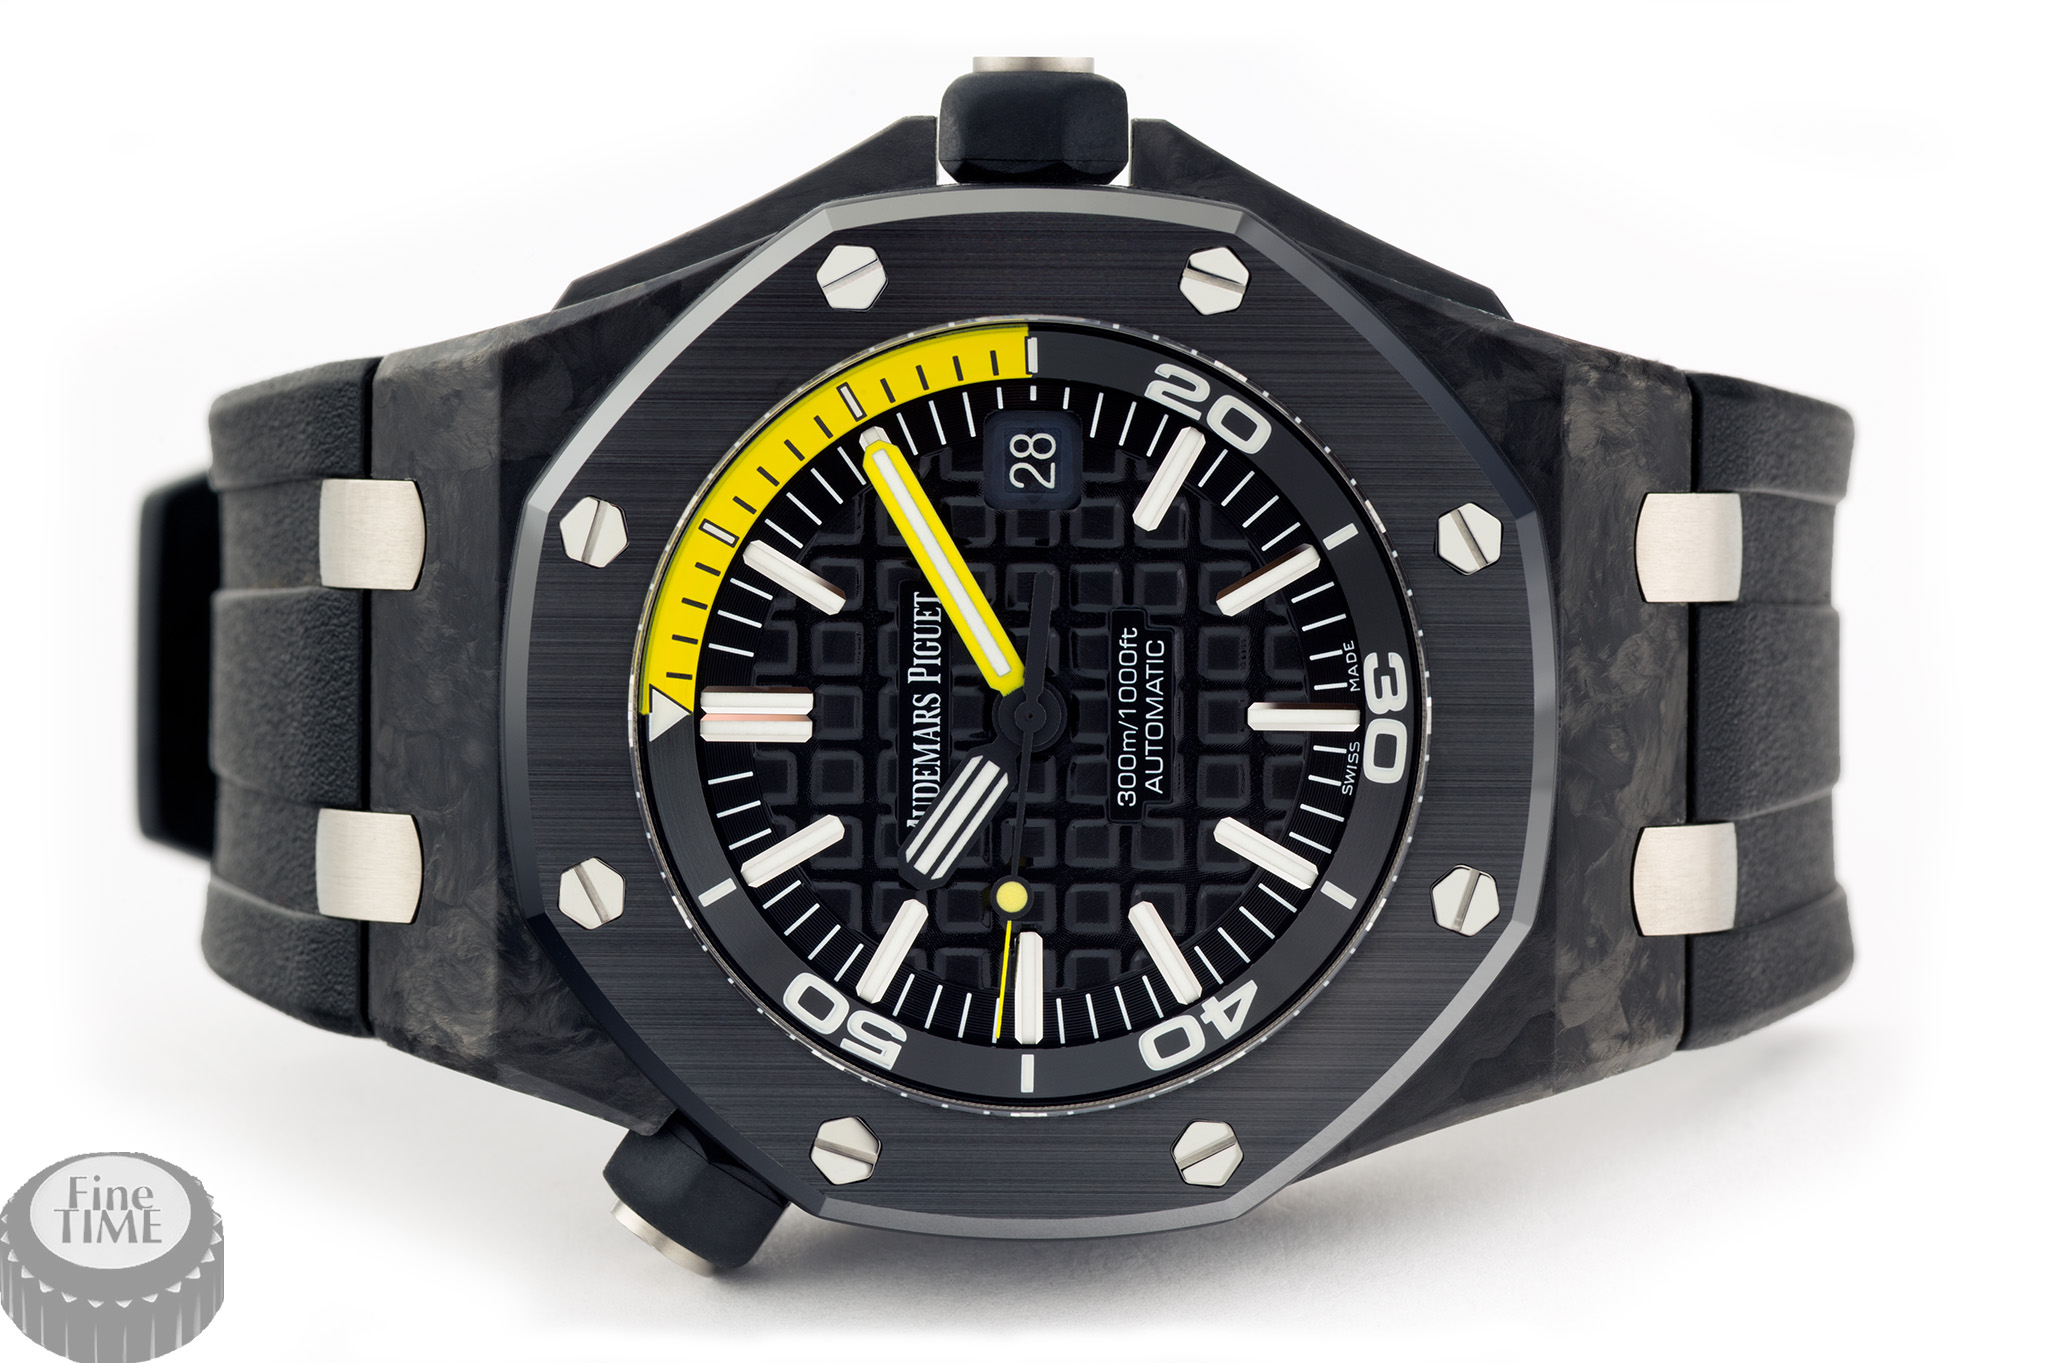 Audemars Piguet Royal Oak Offshore Diver Carbon 15706AU